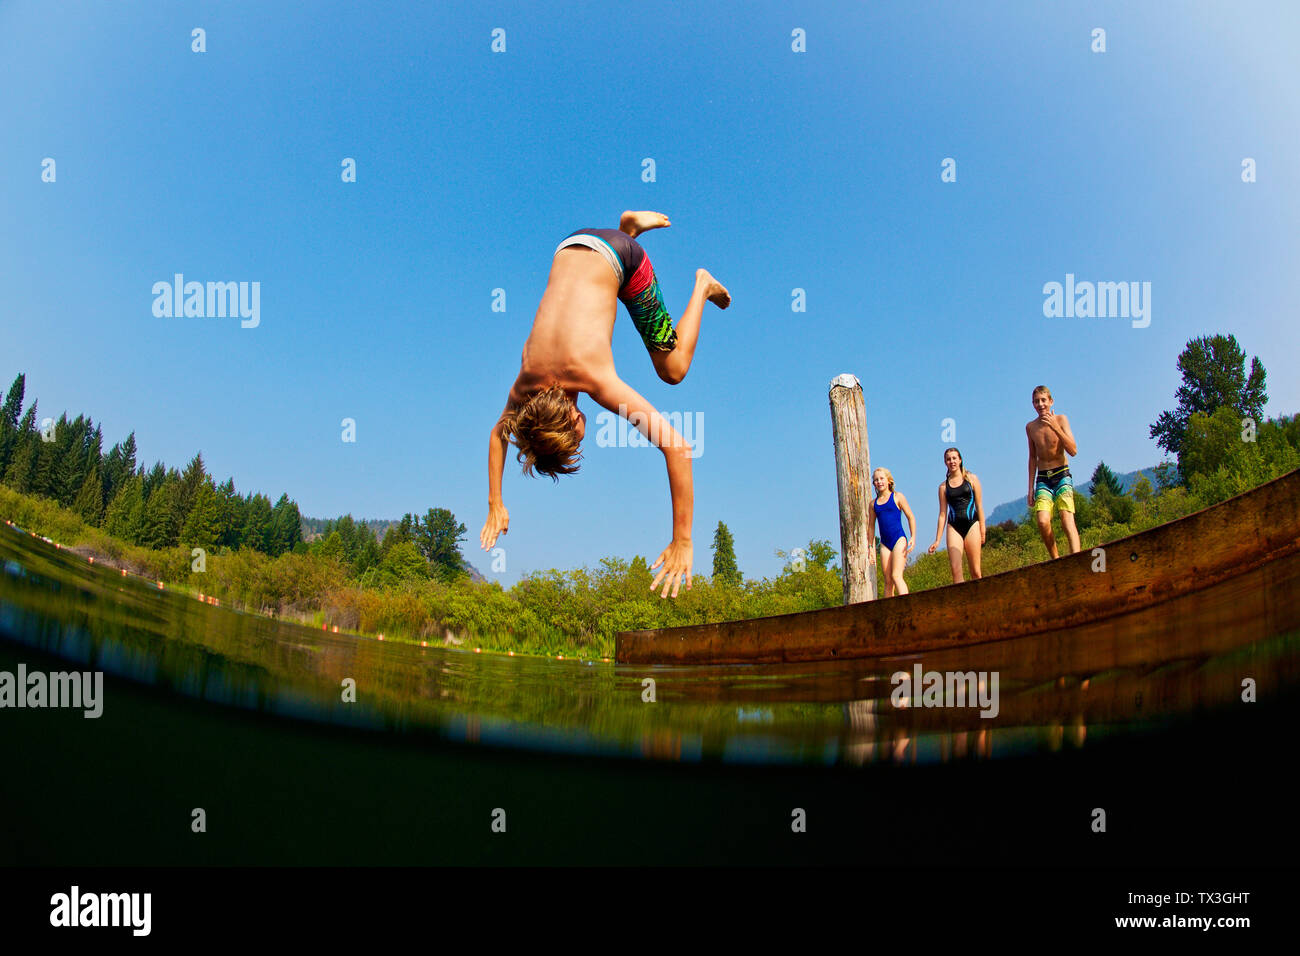 Boy somersaulting off dock into sunny summer lake Stock Photo